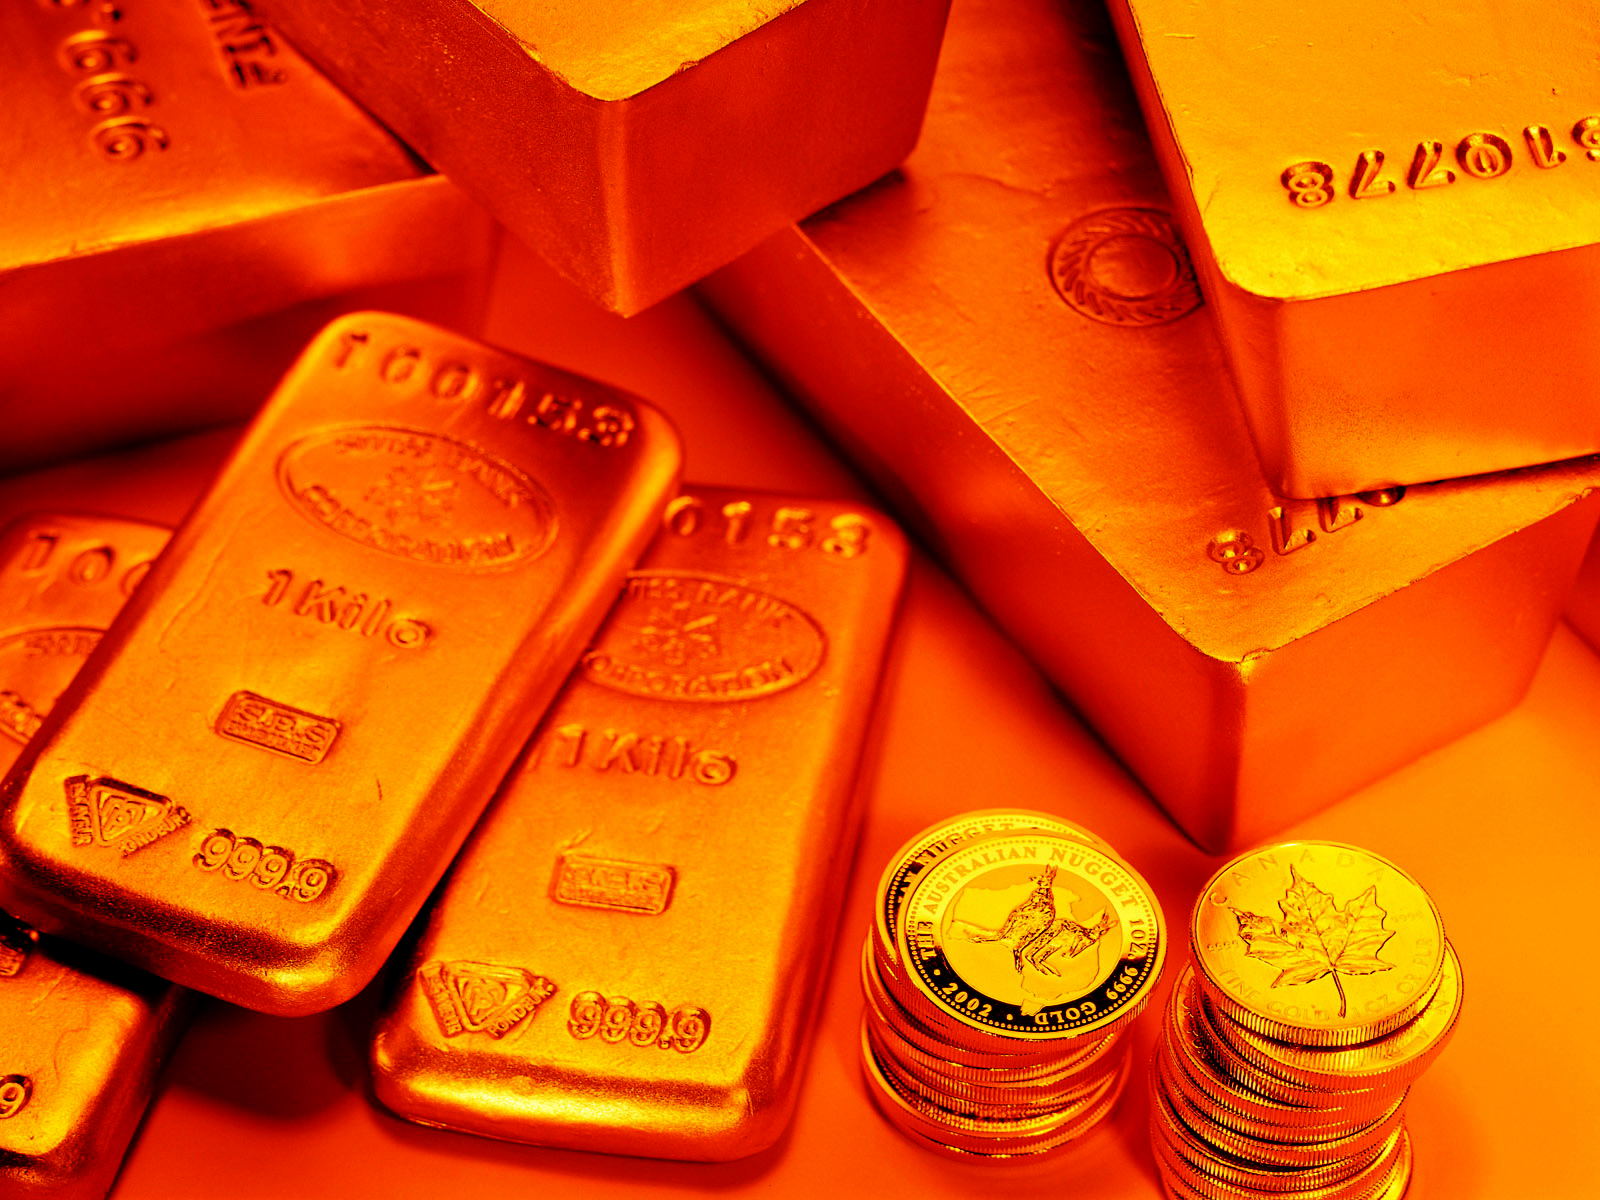 http://1.bp.blogspot.com/-mVCcRU3efQQ/TyVBNUUScyI/AAAAAAAAAZs/qWOCBlPahno/s1600/Shining_Golds_Bars_and_Coins_HD_Wallpaper-Vvallpaper.Net.jpg